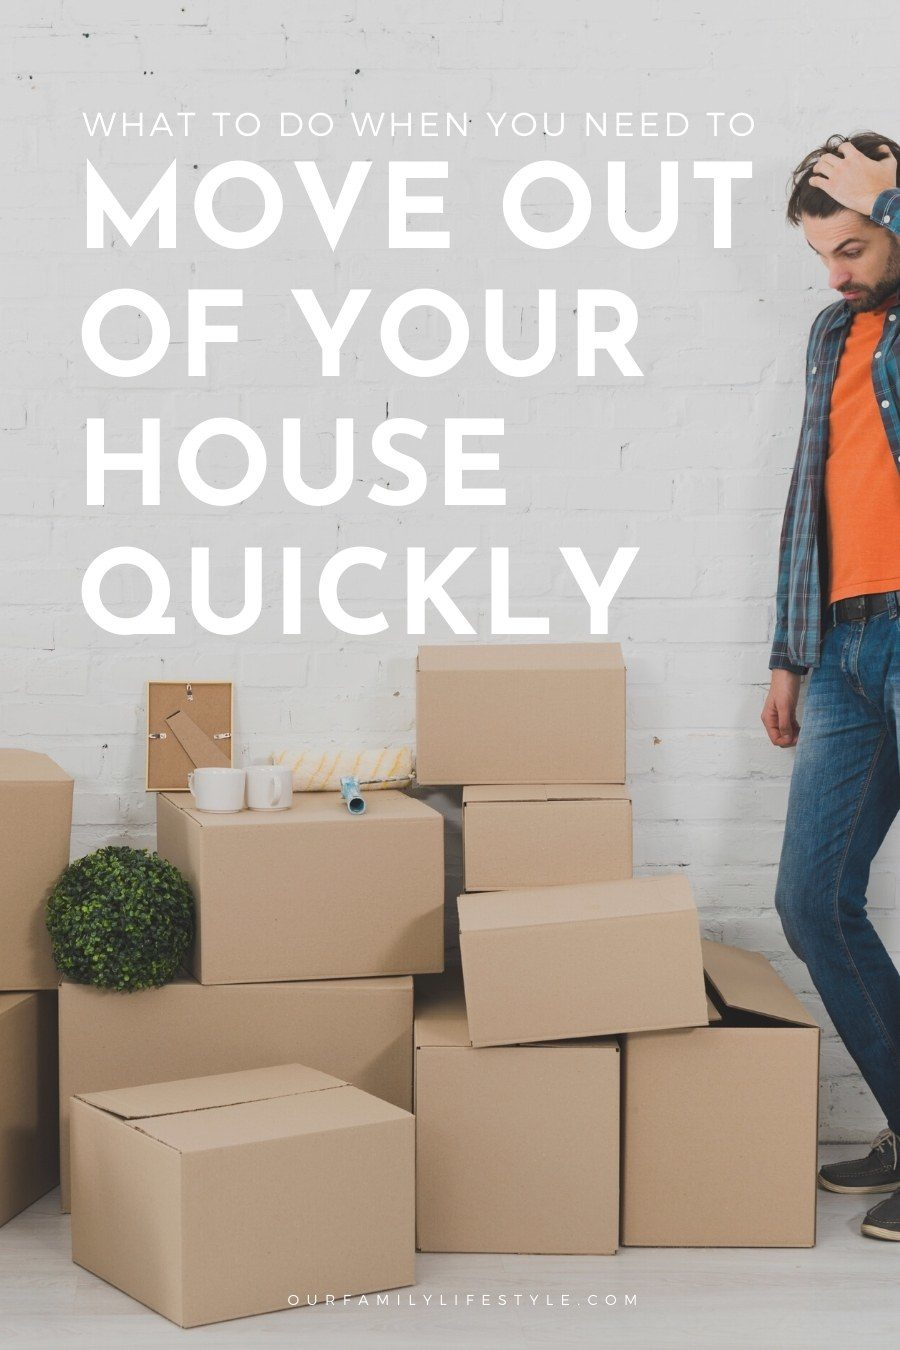 What to do When You Need to Move Out of Your House Quickly